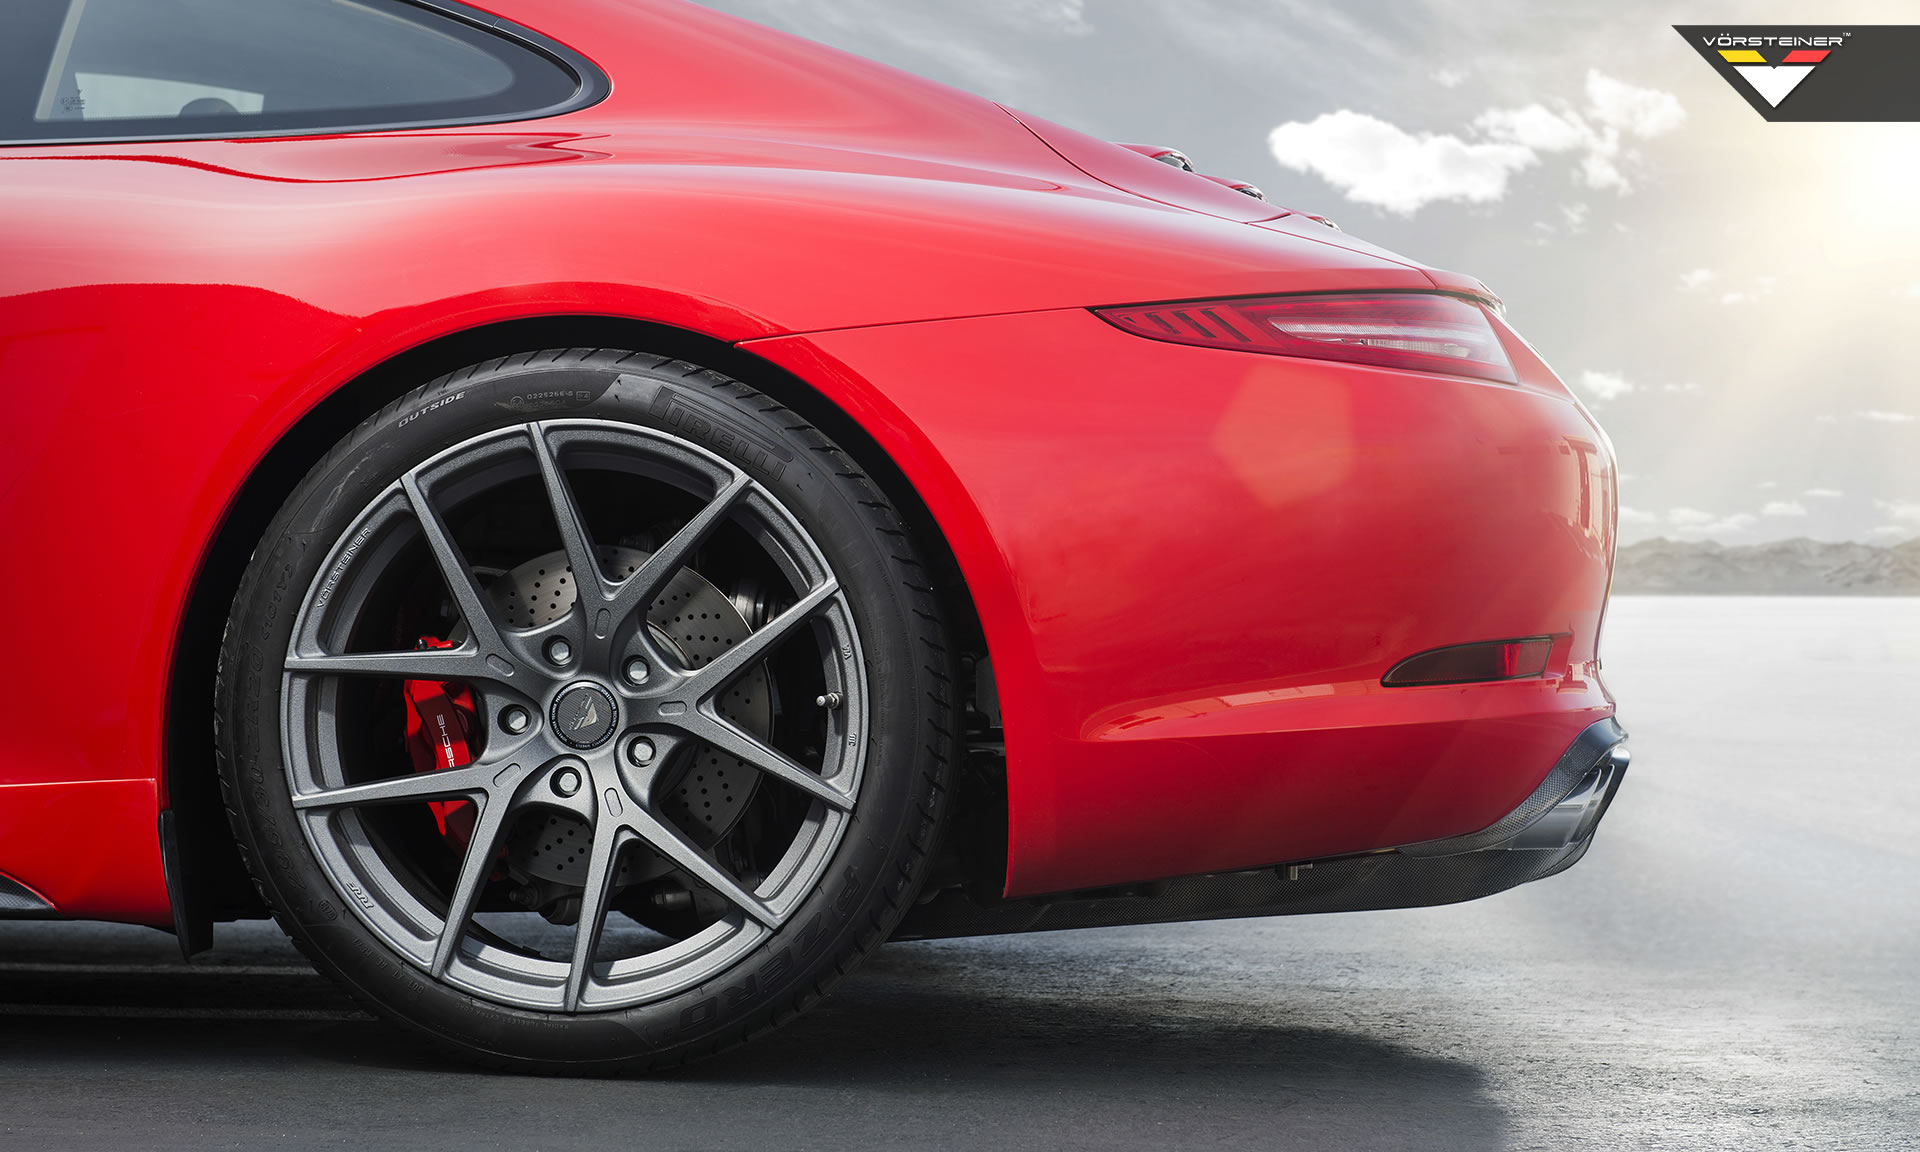 2014 porsche 911 carrera s v gt by vorsteiner detail. Black Bedroom Furniture Sets. Home Design Ideas